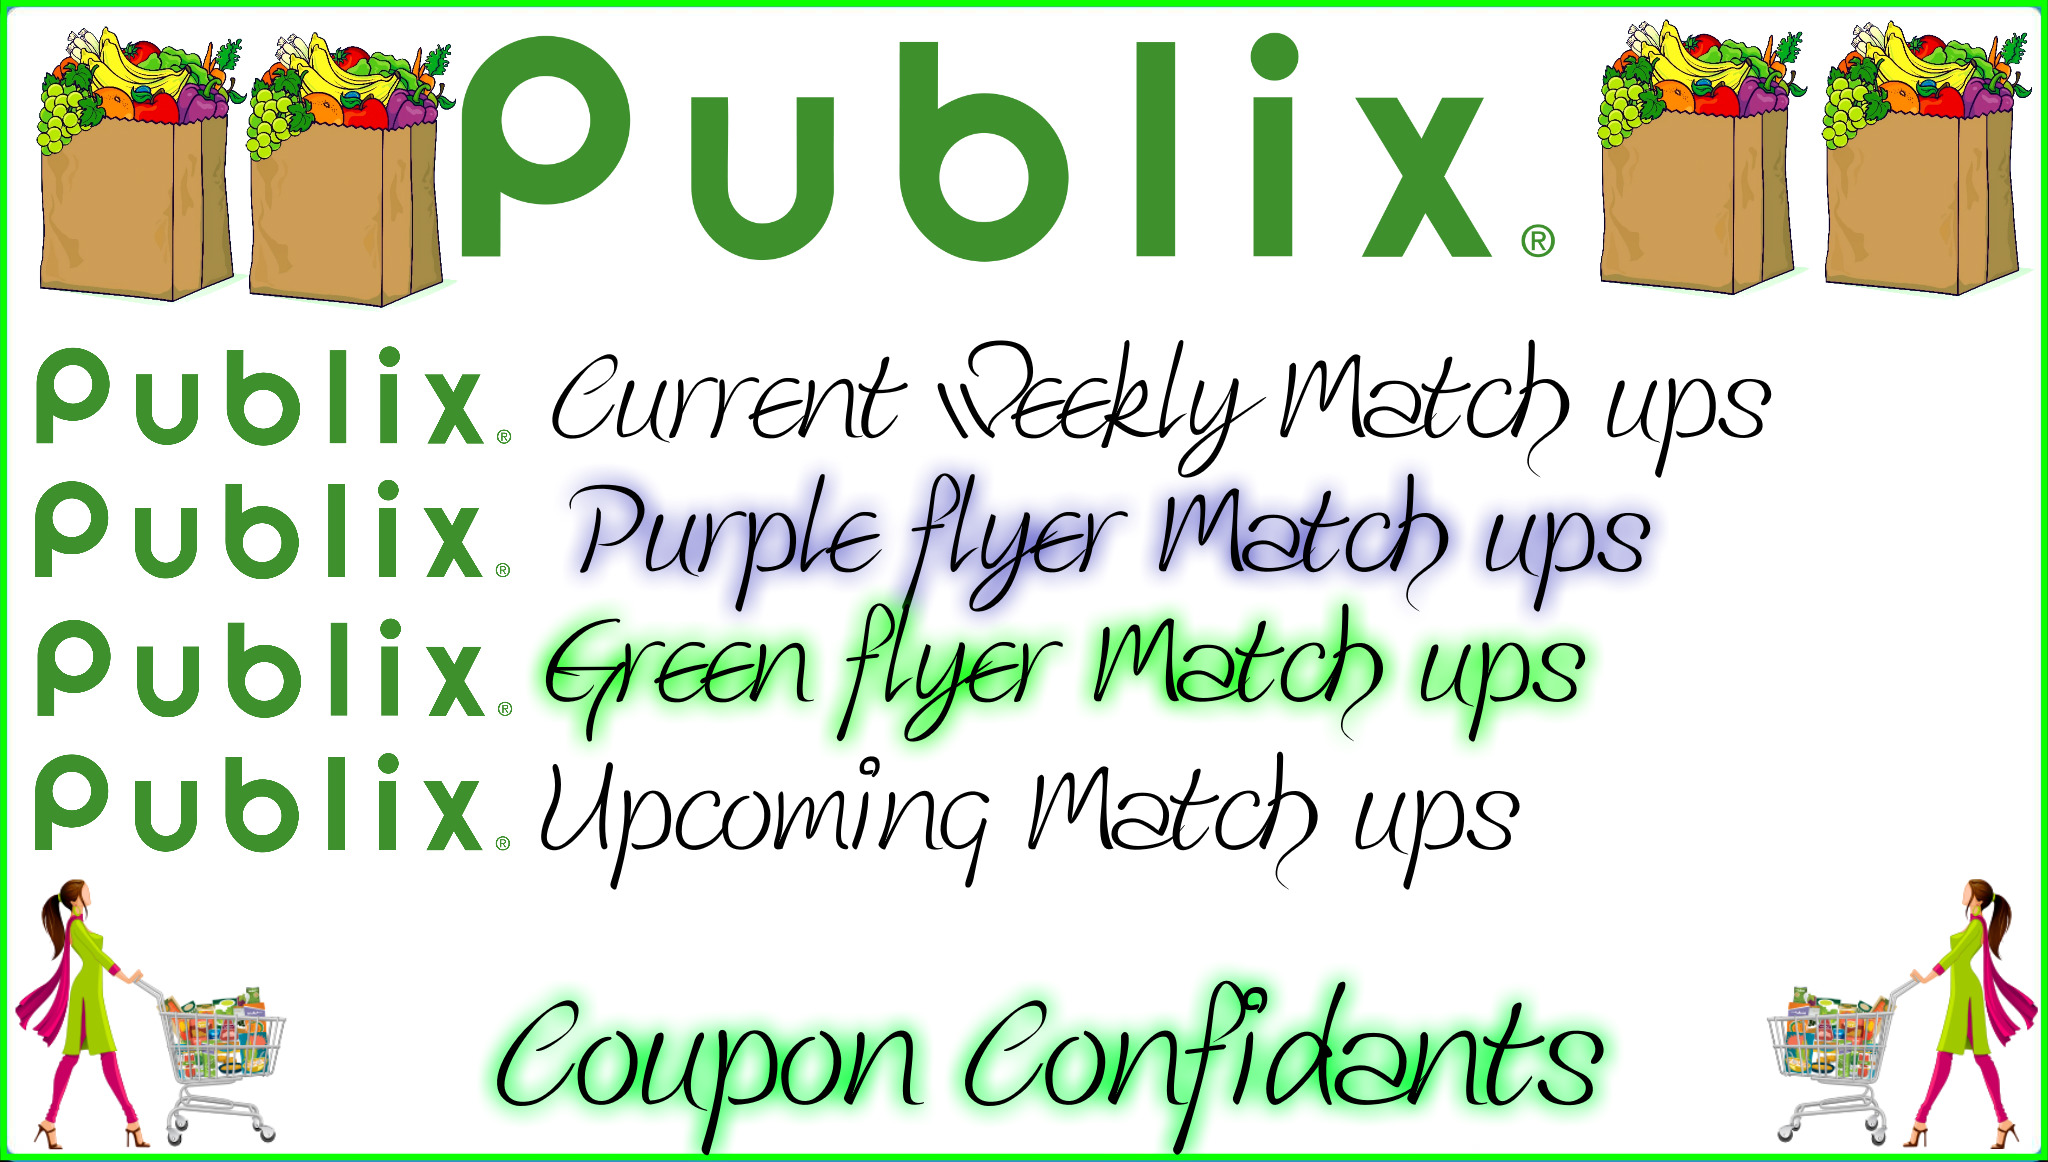 Main Publix Page - Links to ALL flyers, current match ups, AND upcoming ones!!